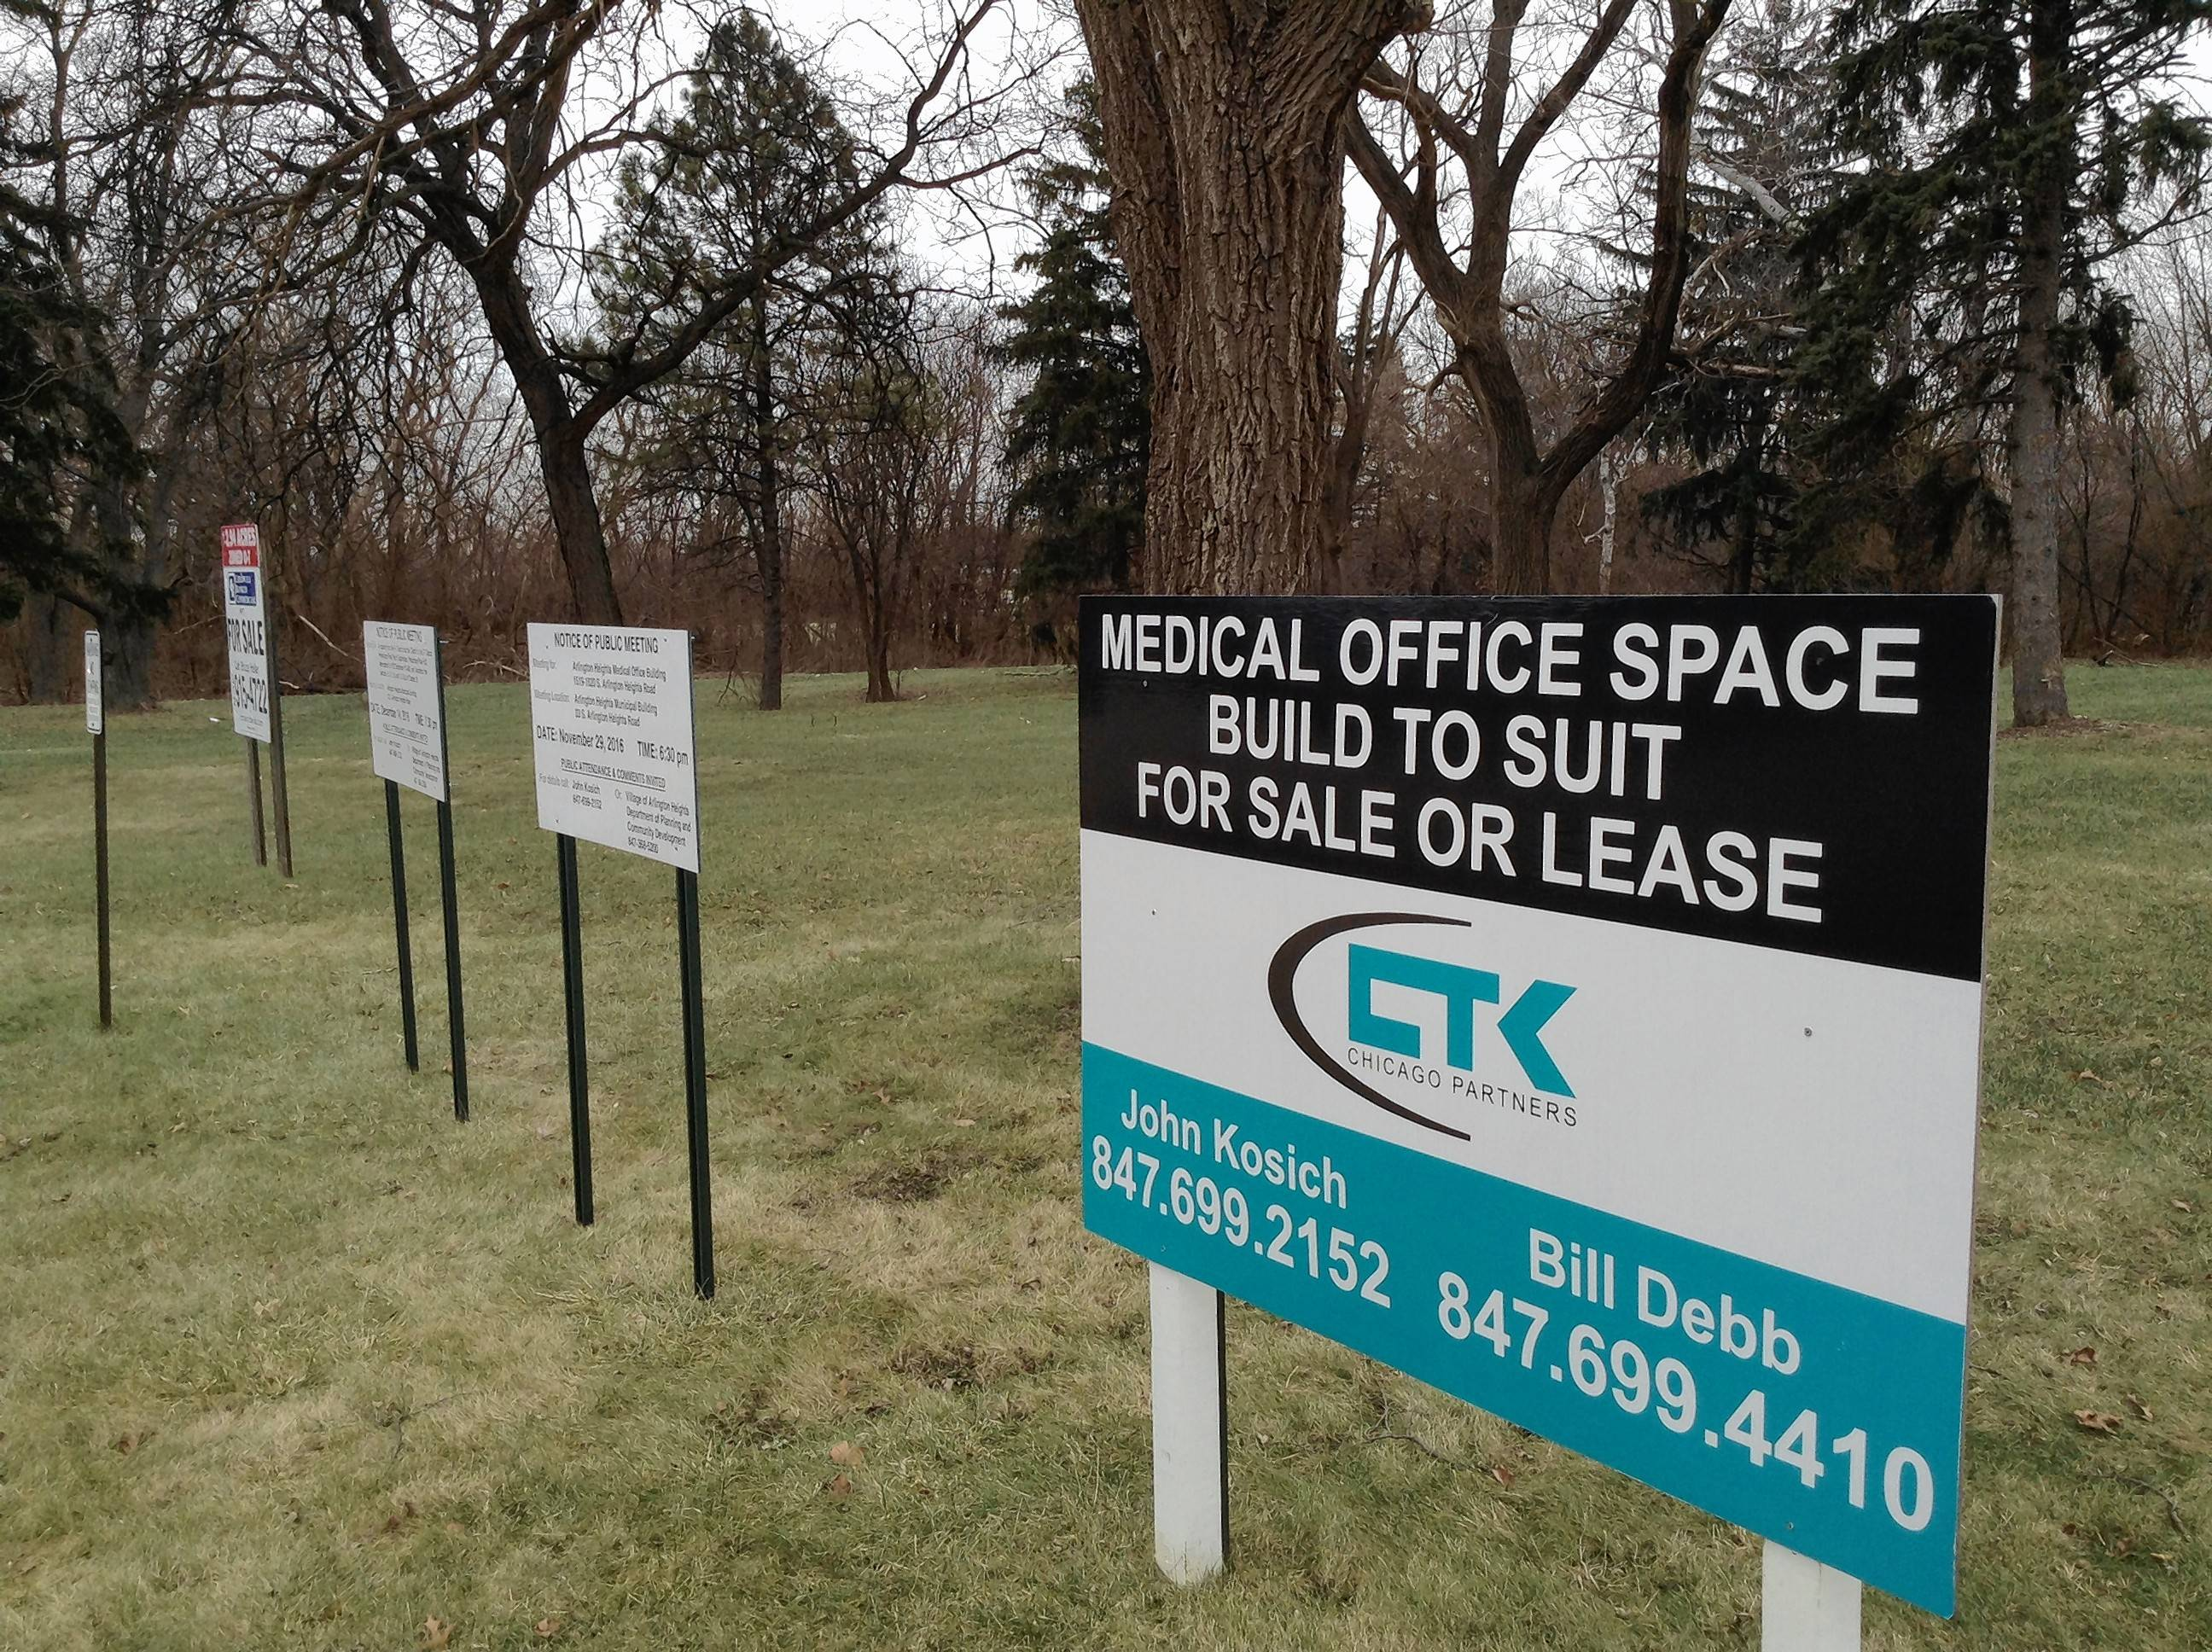 A medical office building is proposed for this vacant 3.86-acre site on Arlington Heights Road north of Golf Road. Arlington Heights leaders could decide on the plan as early as Jan. 17.